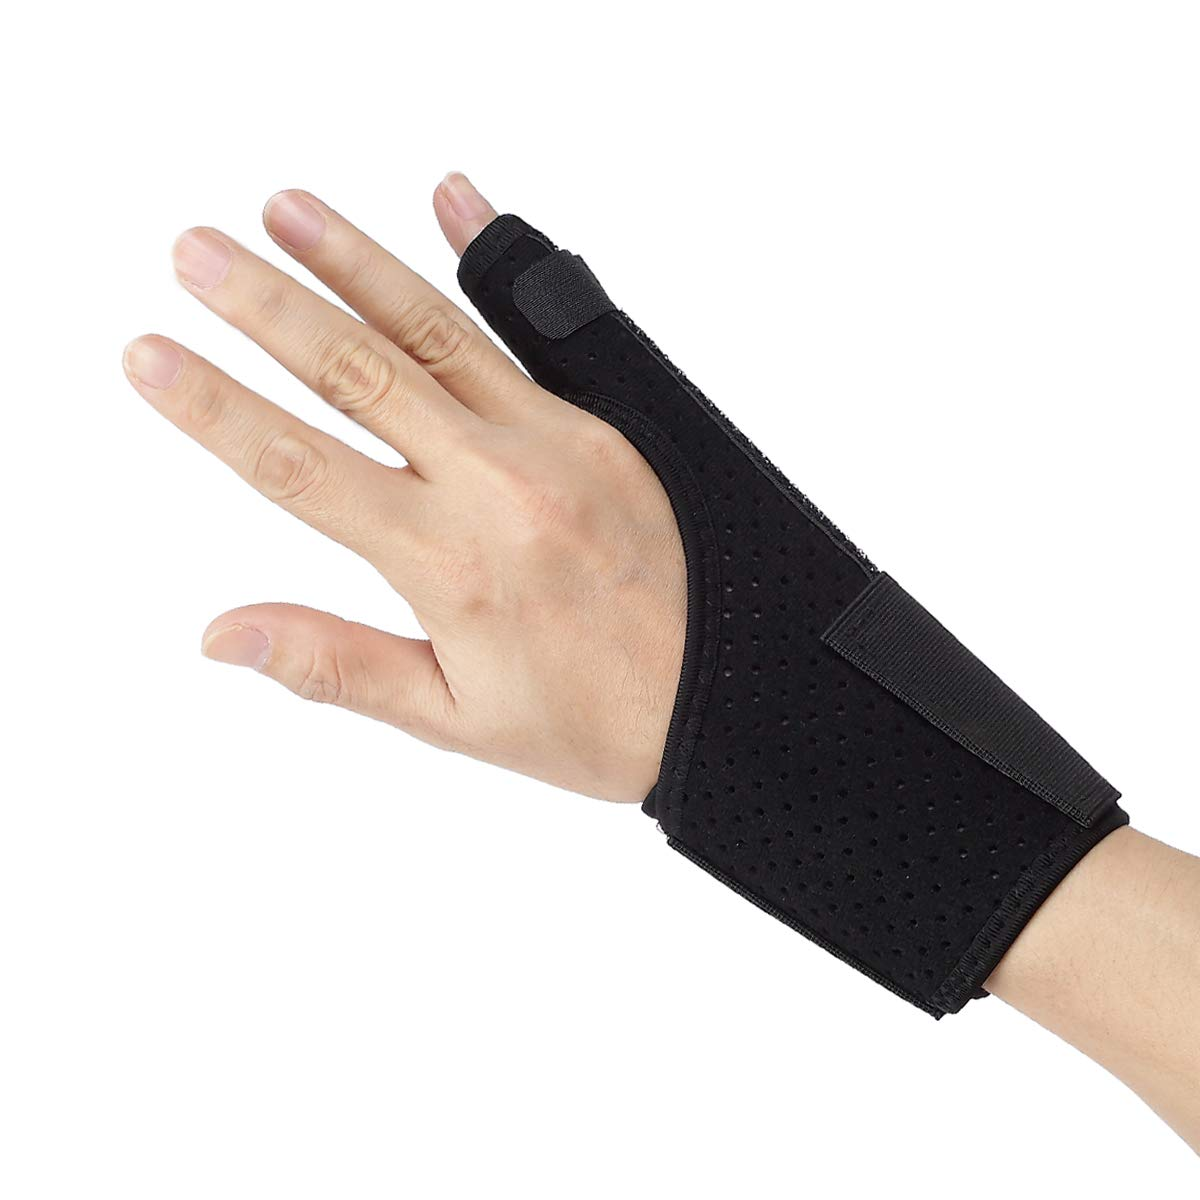 ultrafun trigger finger splint brace support breathable wrist and thumb fracture finger stabilizer brace sleeves for pain relief carpal tunnel